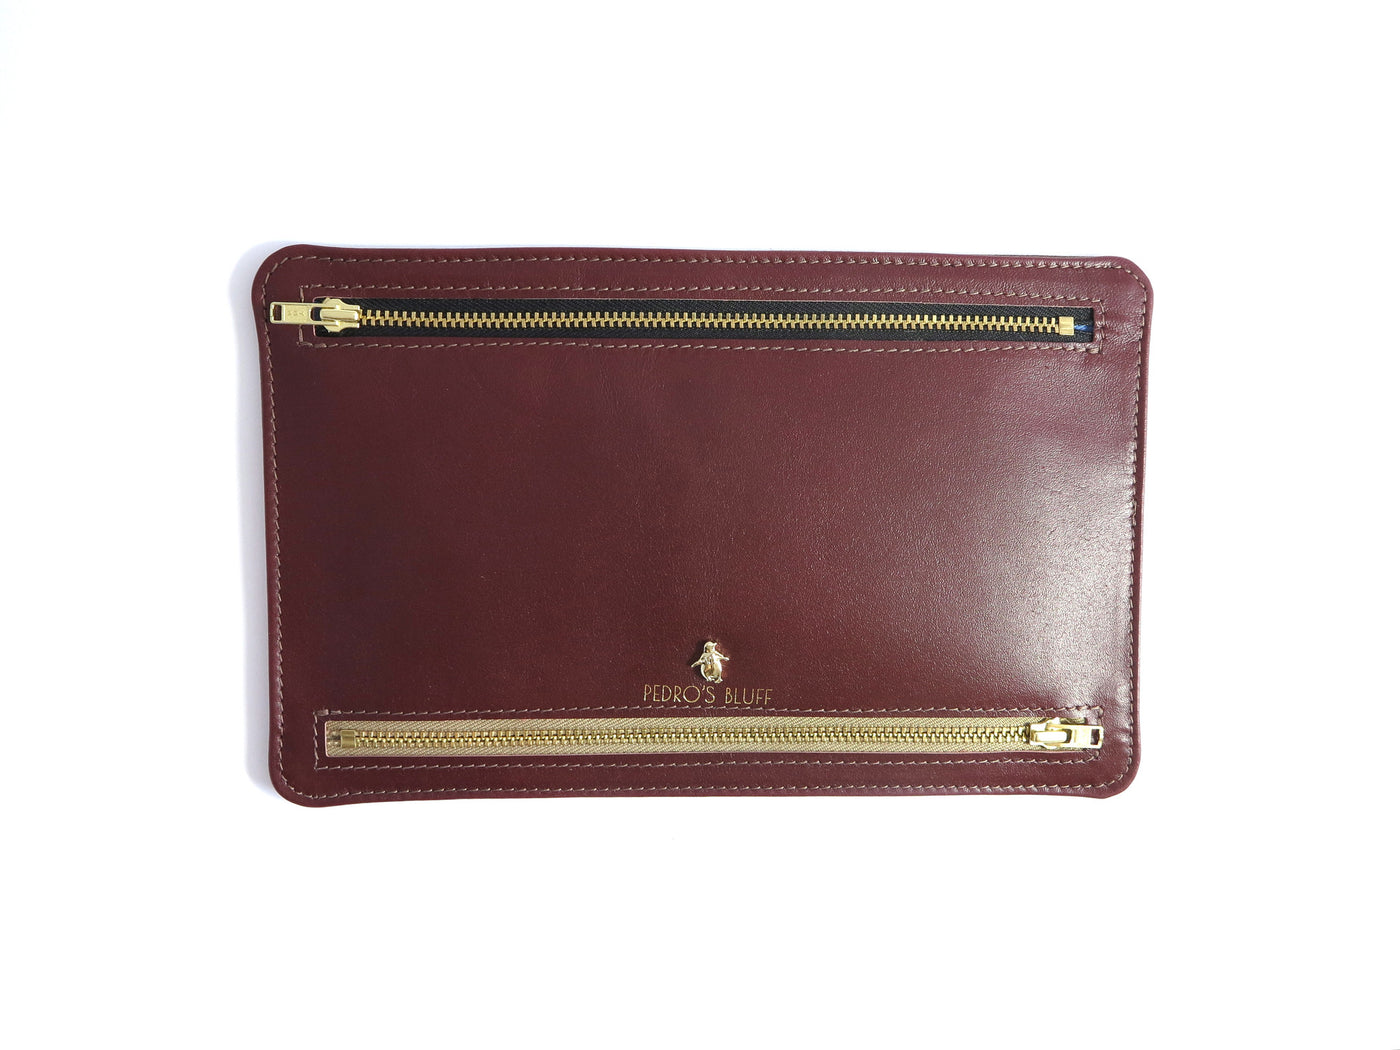 Globehopper Wallet - Wine Red Lambskin / Dark Brown Deer Nappa - PEDRO'S BLUFF - New Zealand Leather Bags & Accessories